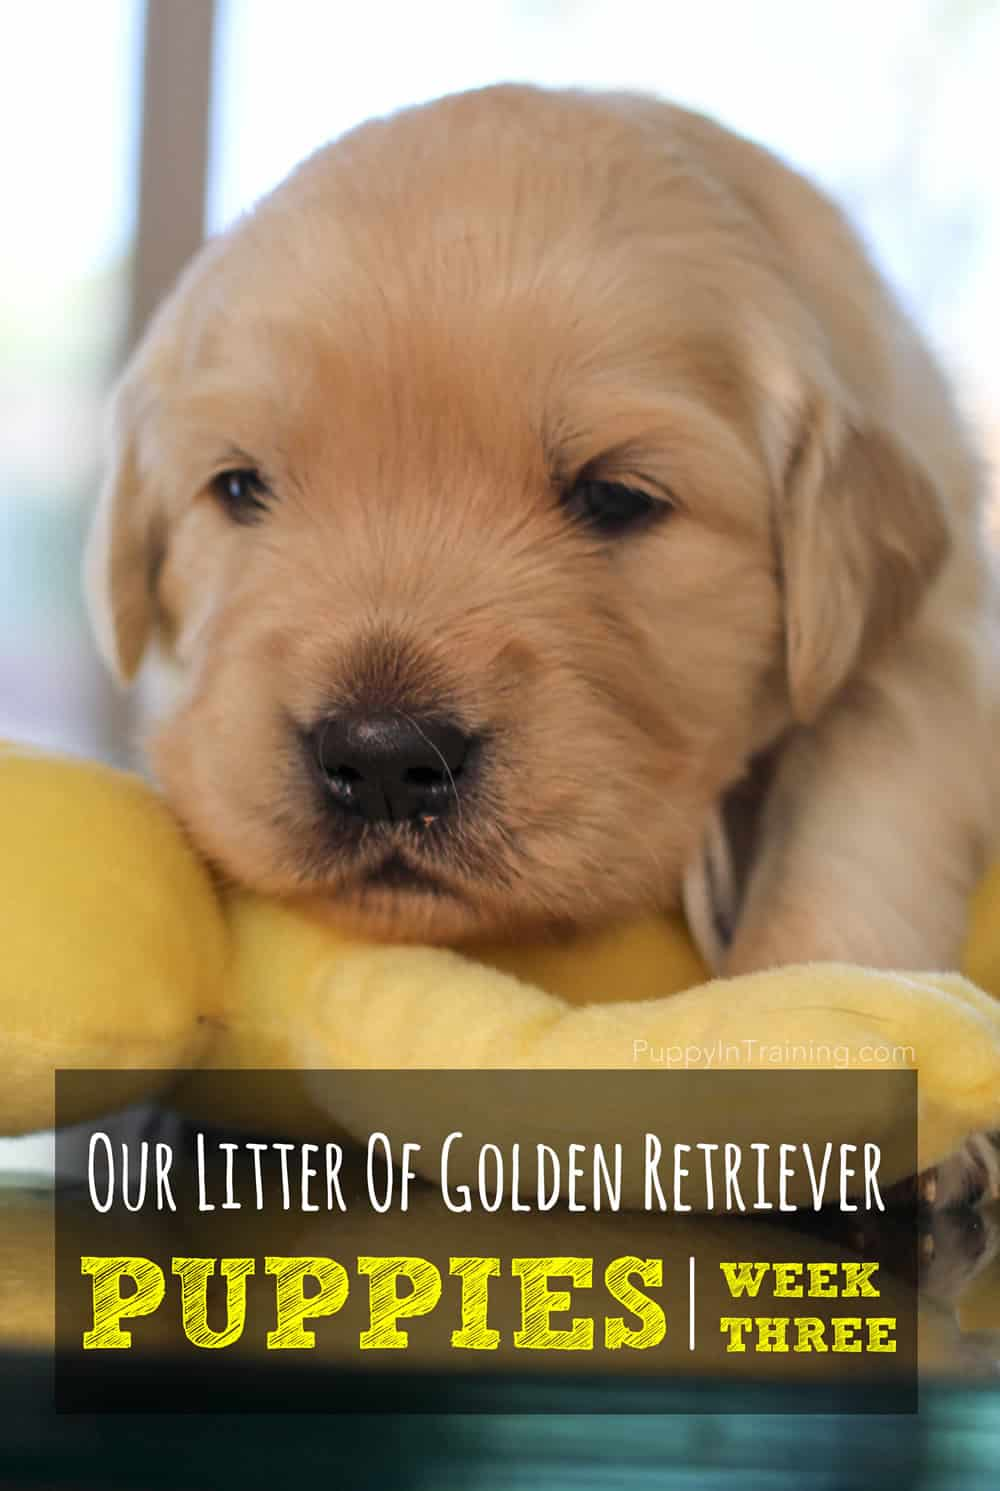 Our litter of golden retriever pups week 3 puppy in training nvjuhfo Choice Image